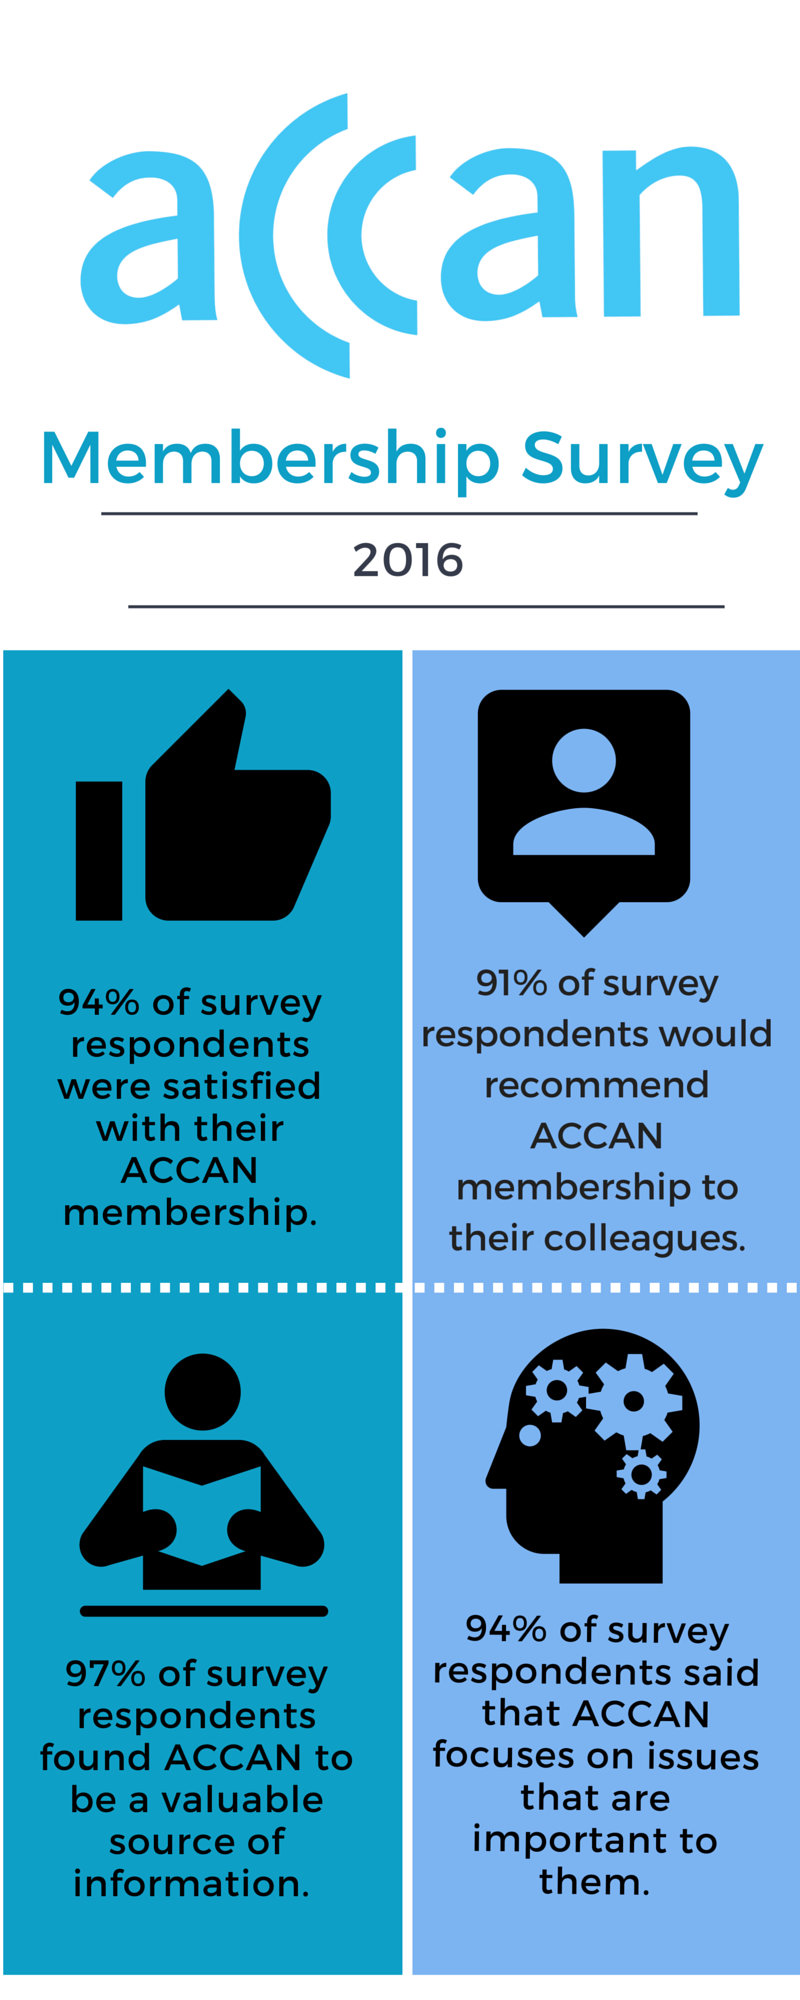 Image showing key statistics from member survey